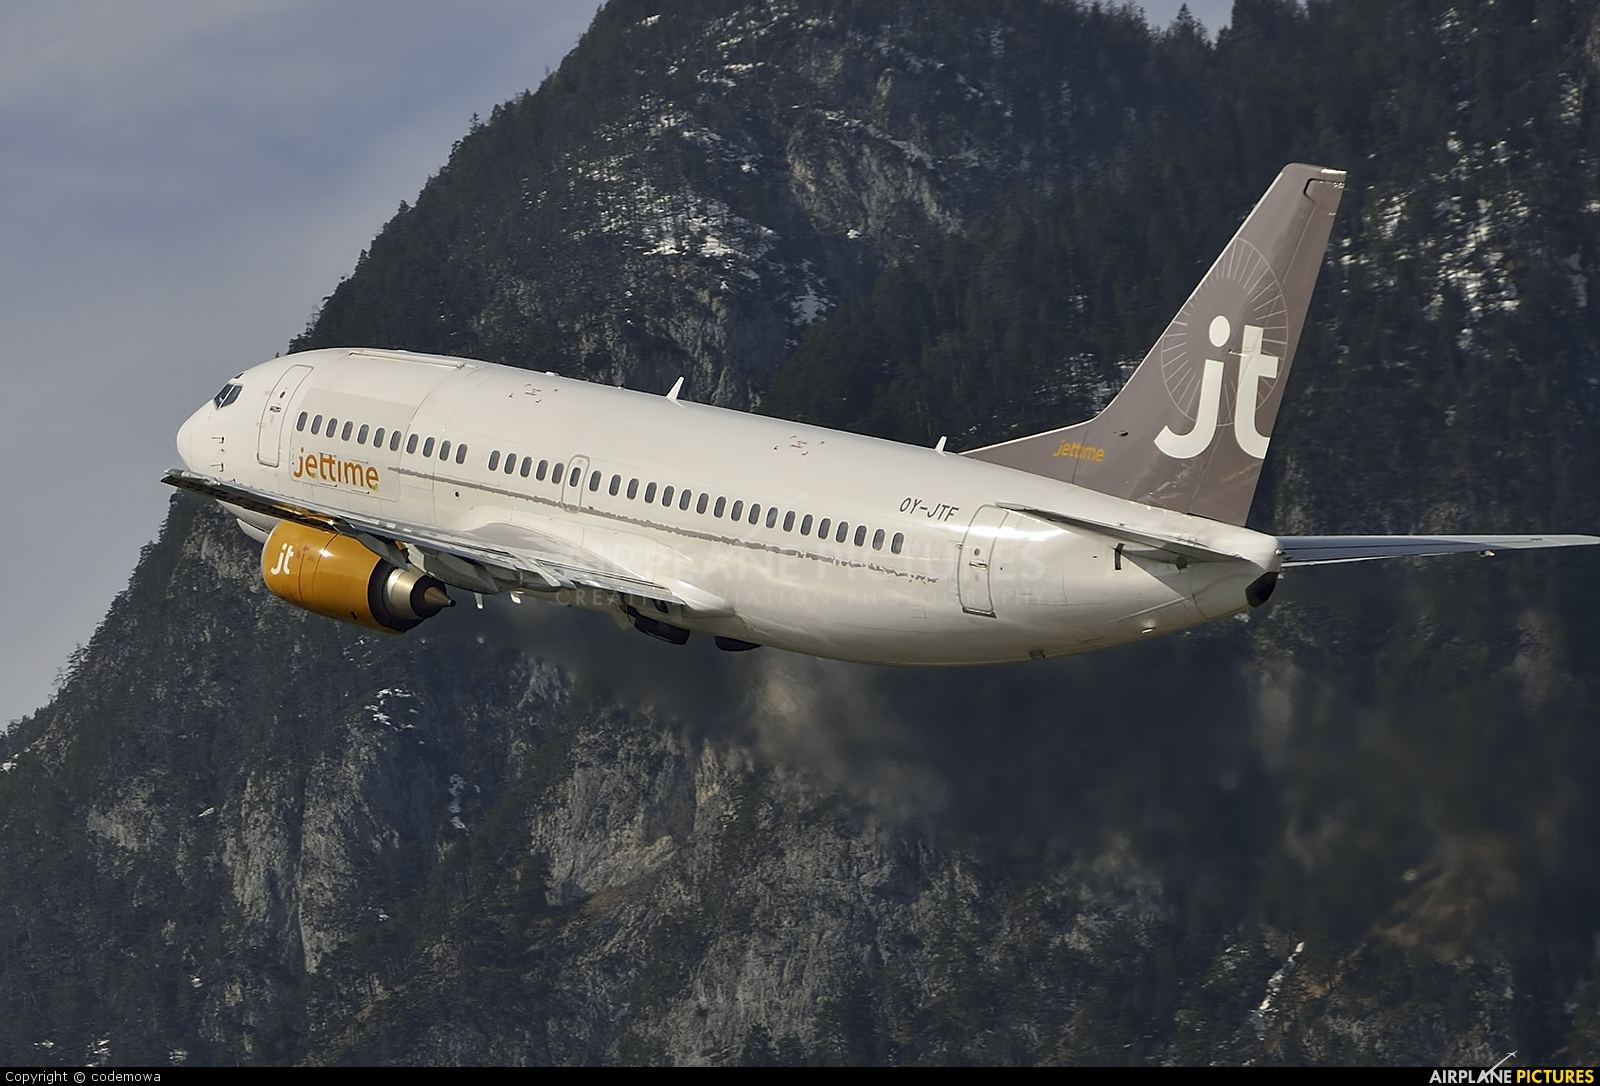 Jet Time OY-JTF aircraft at Innsbruck